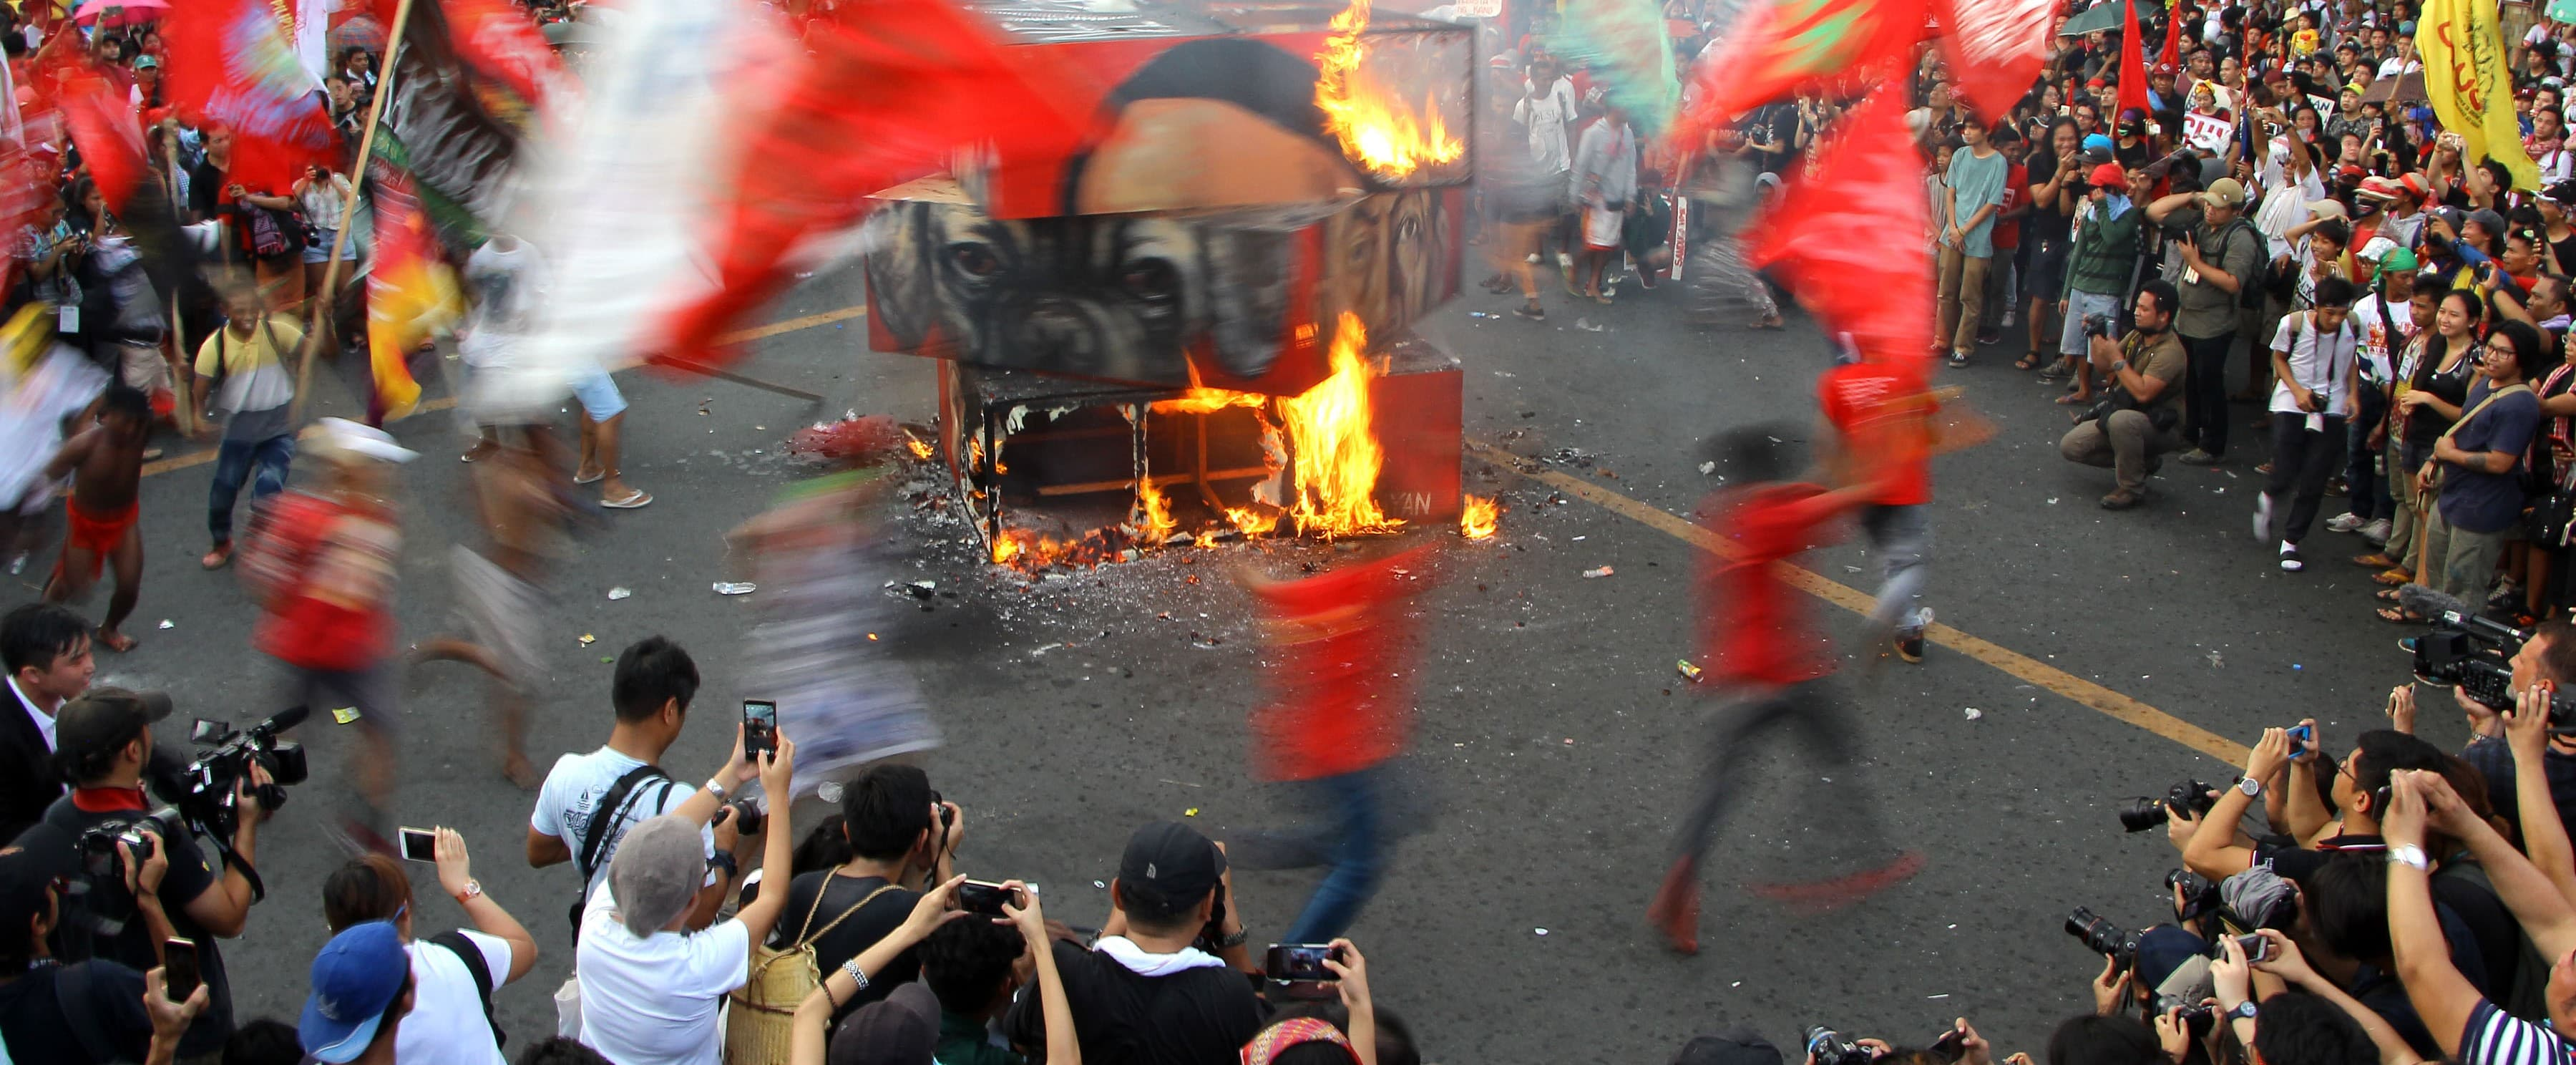 A cube effigy of Philippine President Rodrigo Duterte is burned in Manila, September 2017 (Photo:  Gregorio B. Dantes Jr./Pacific Press/LightRocket via Getty Images)